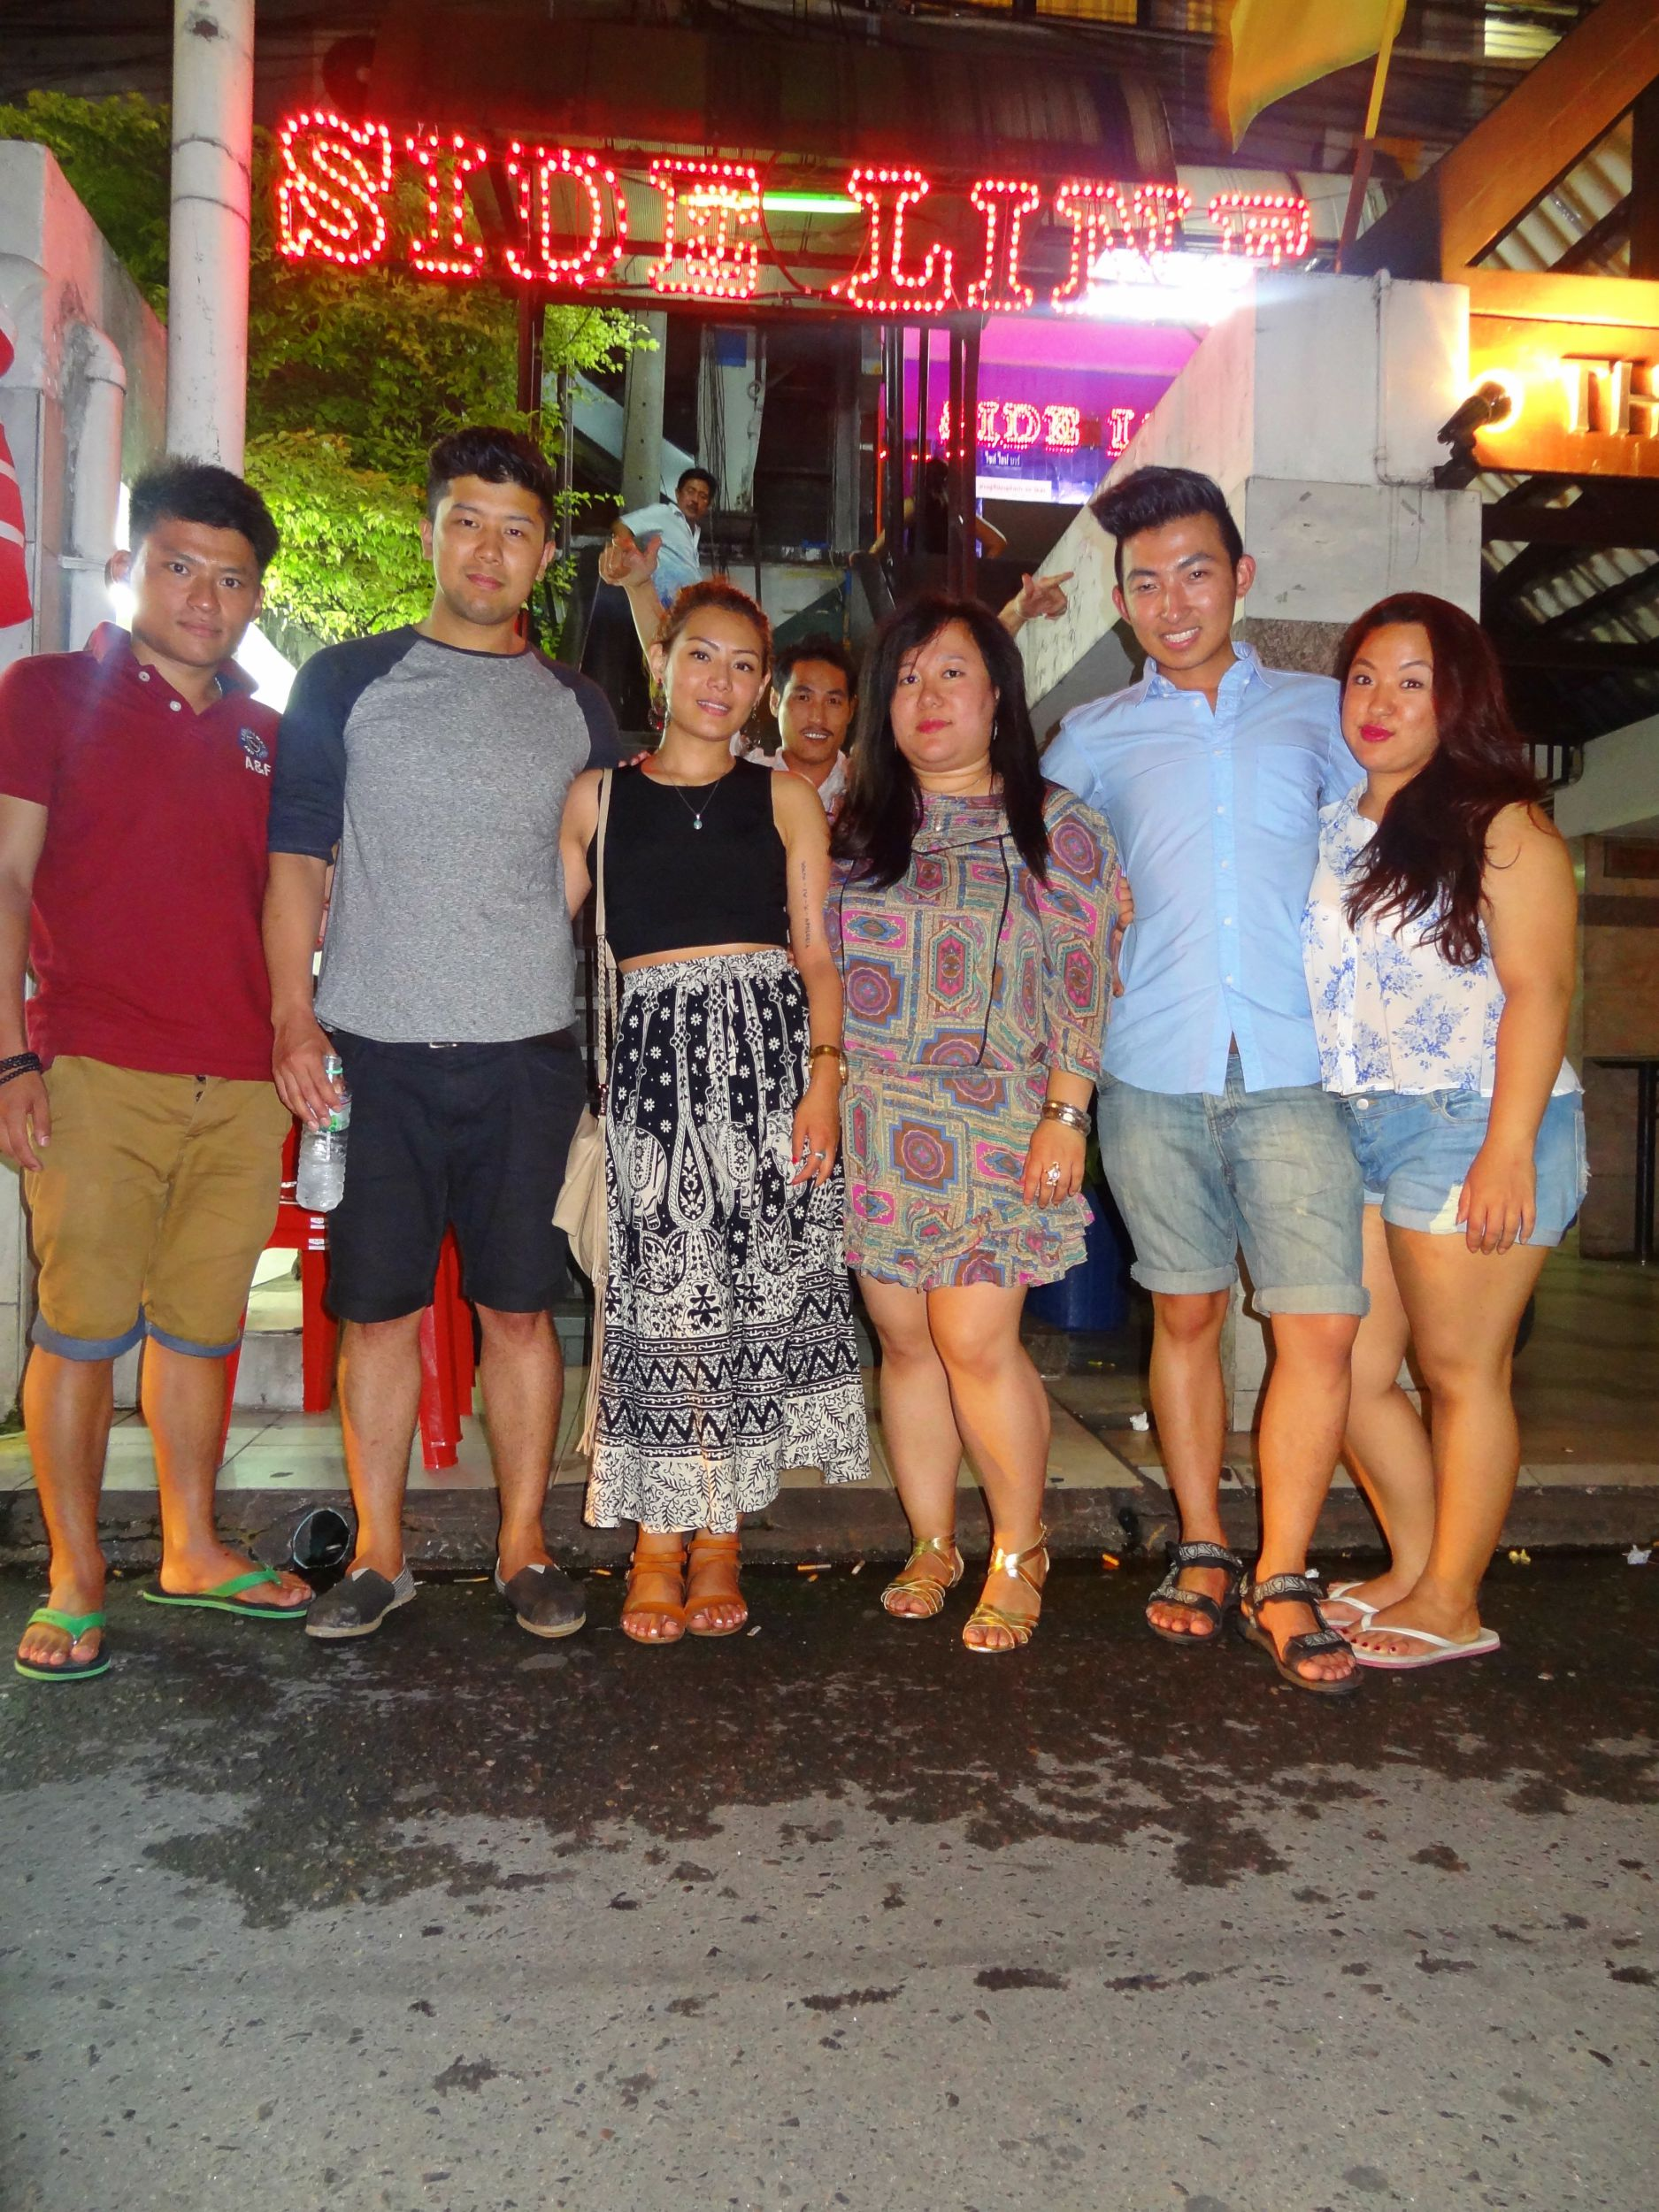 """Aug 13: Six of us arrived all separately from Nepal and the UK. During our stay in Bangkok we decided to visit the infamous tourist trap called Patpong for its """"nightlife"""". A very memorable night. #unforgettable"""